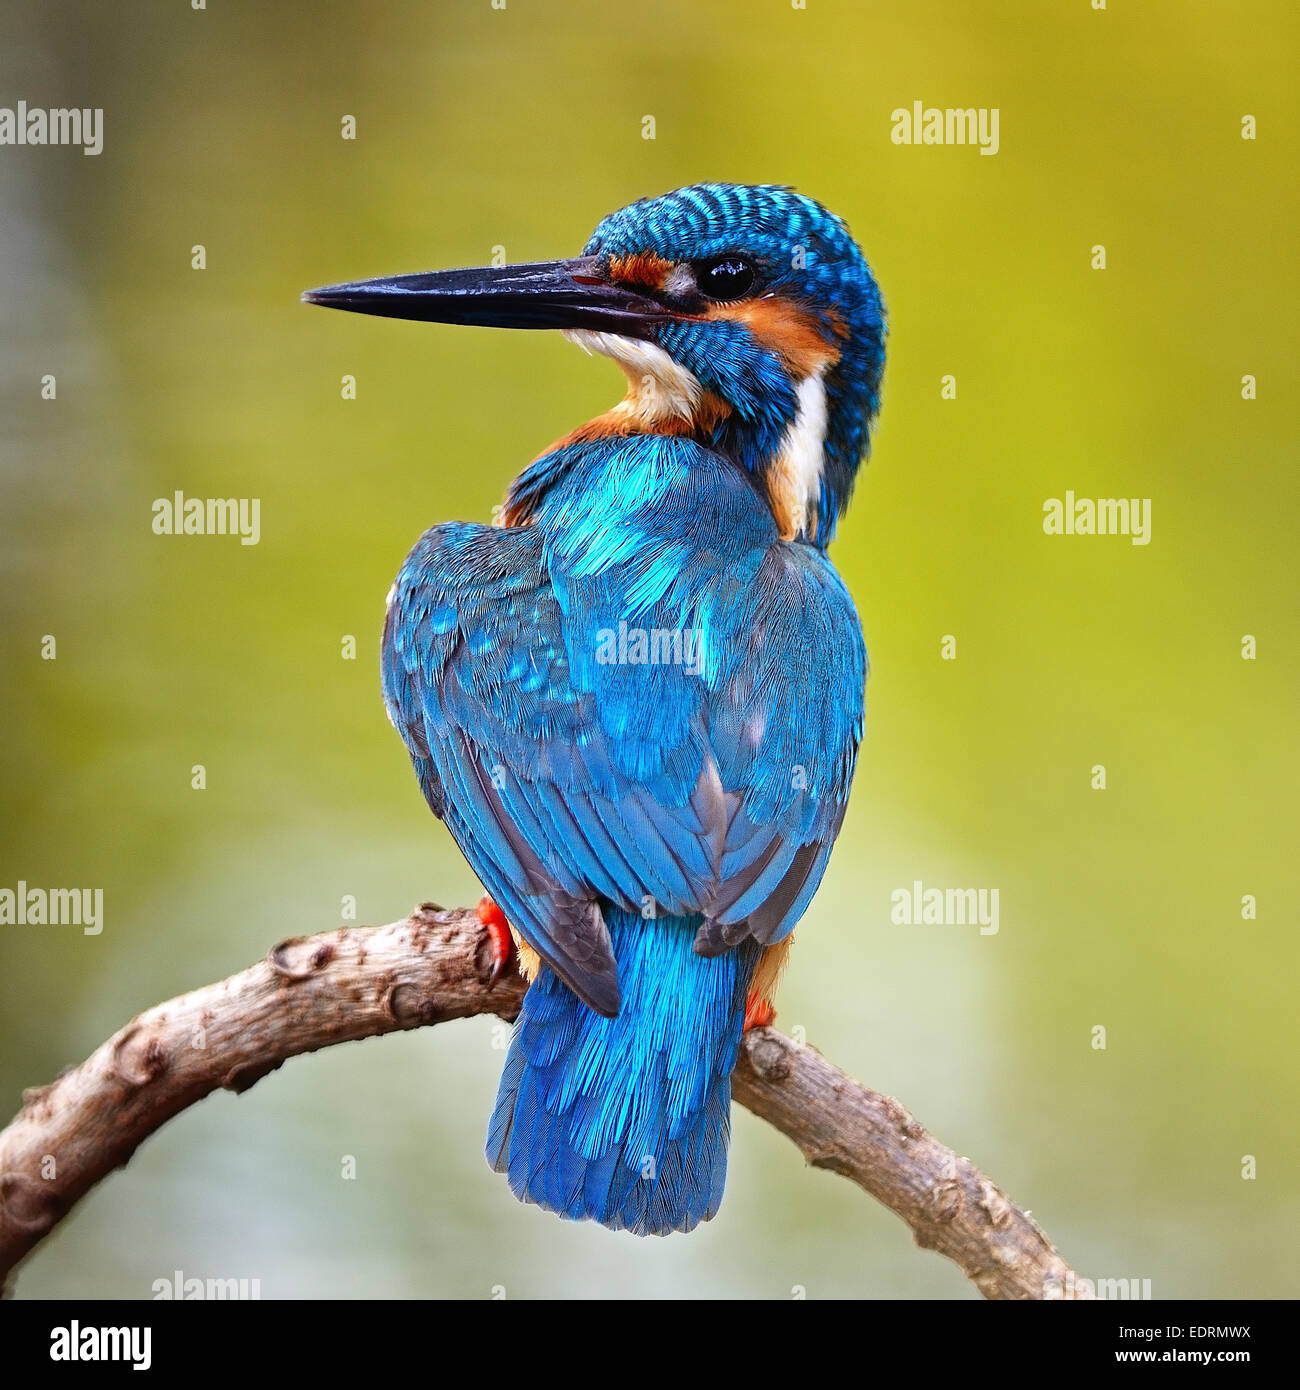 Beautiful blue Kingfisher bird, male Common Kingfisher (Alcedo atthis), sitting on a branch, back profile - Stock Image